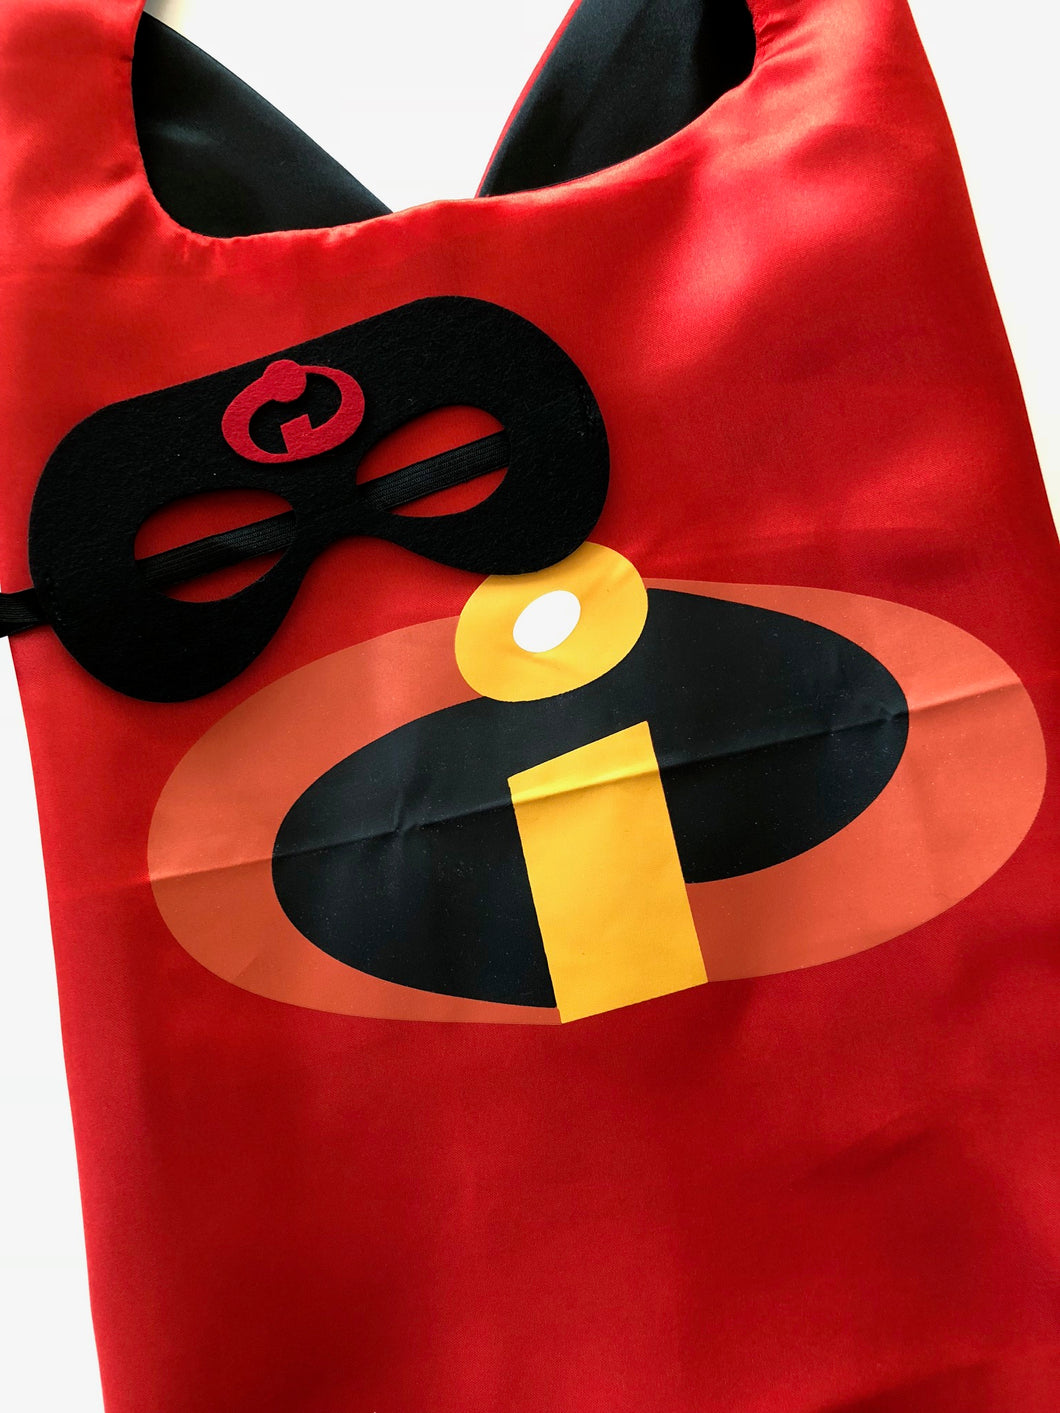 Incredibles Cape Set, Incredibles Party Favors, Incredibles Party Supplies, Incredibles Party Ideas, Incredibles Birthday Party Ideas, Incredibles Party Favors